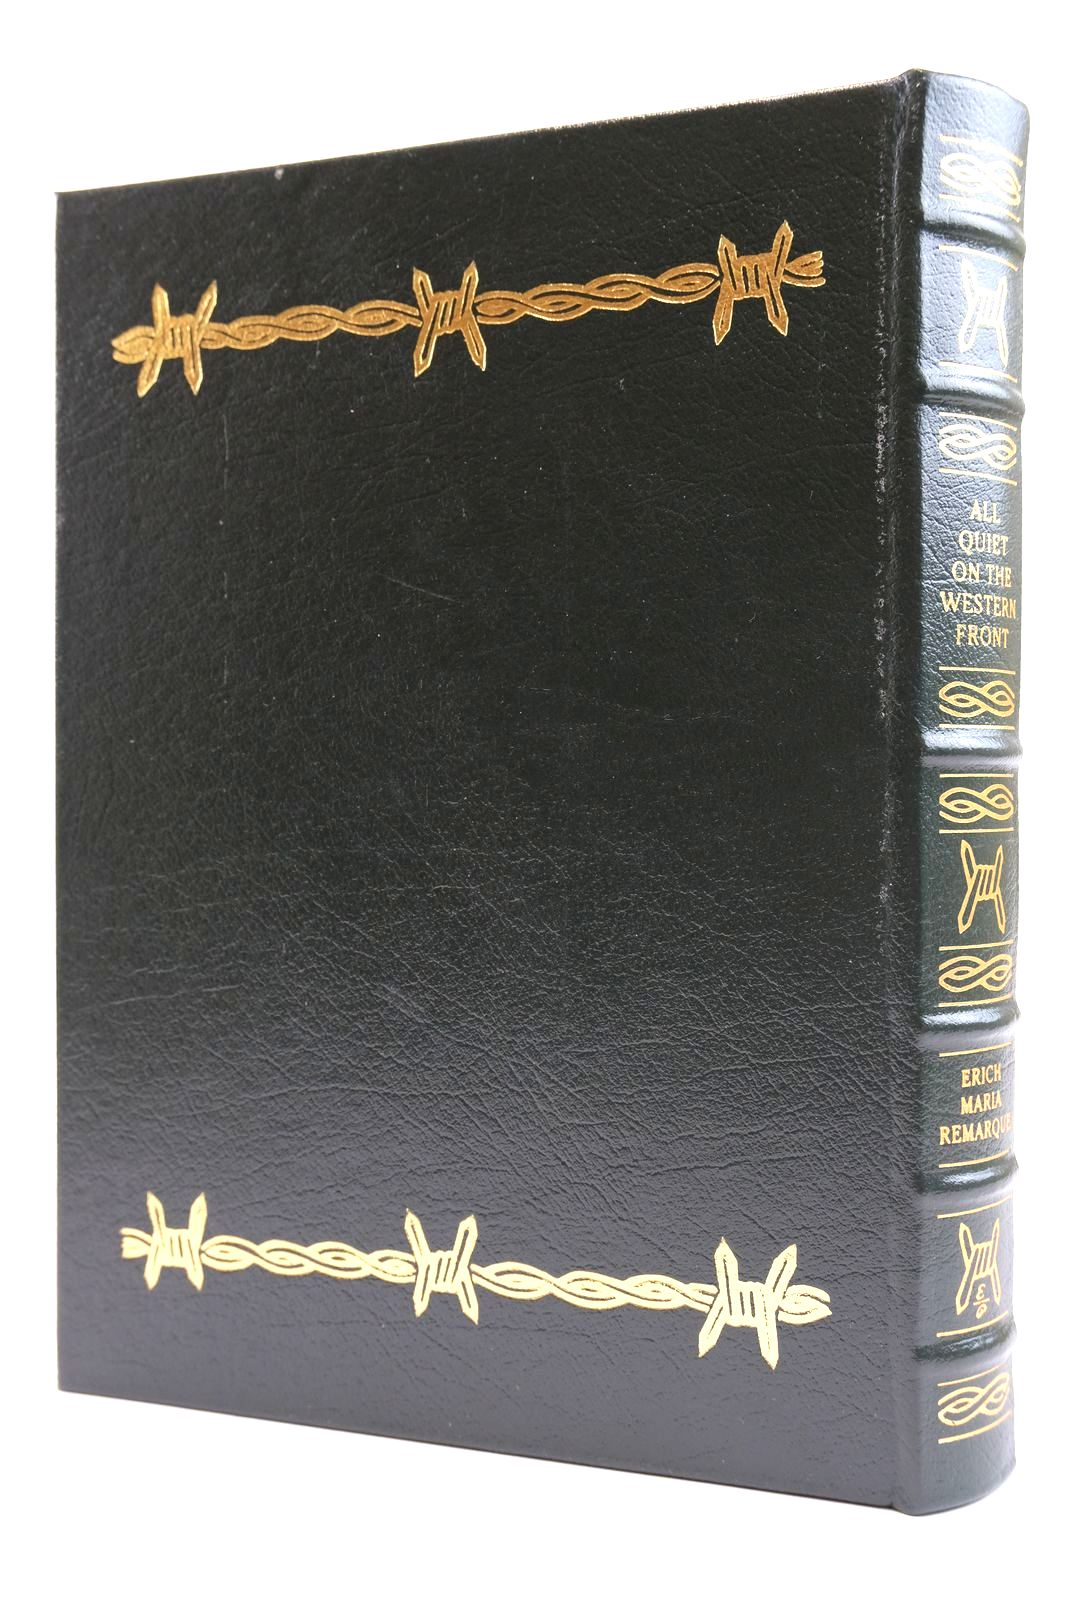 Photo of ALL QUIET ON THE WESTERN FRONT written by Remarque, Erich Maria illustrated by Groth, John published by Easton Press (STOCK CODE: 2132008)  for sale by Stella & Rose's Books